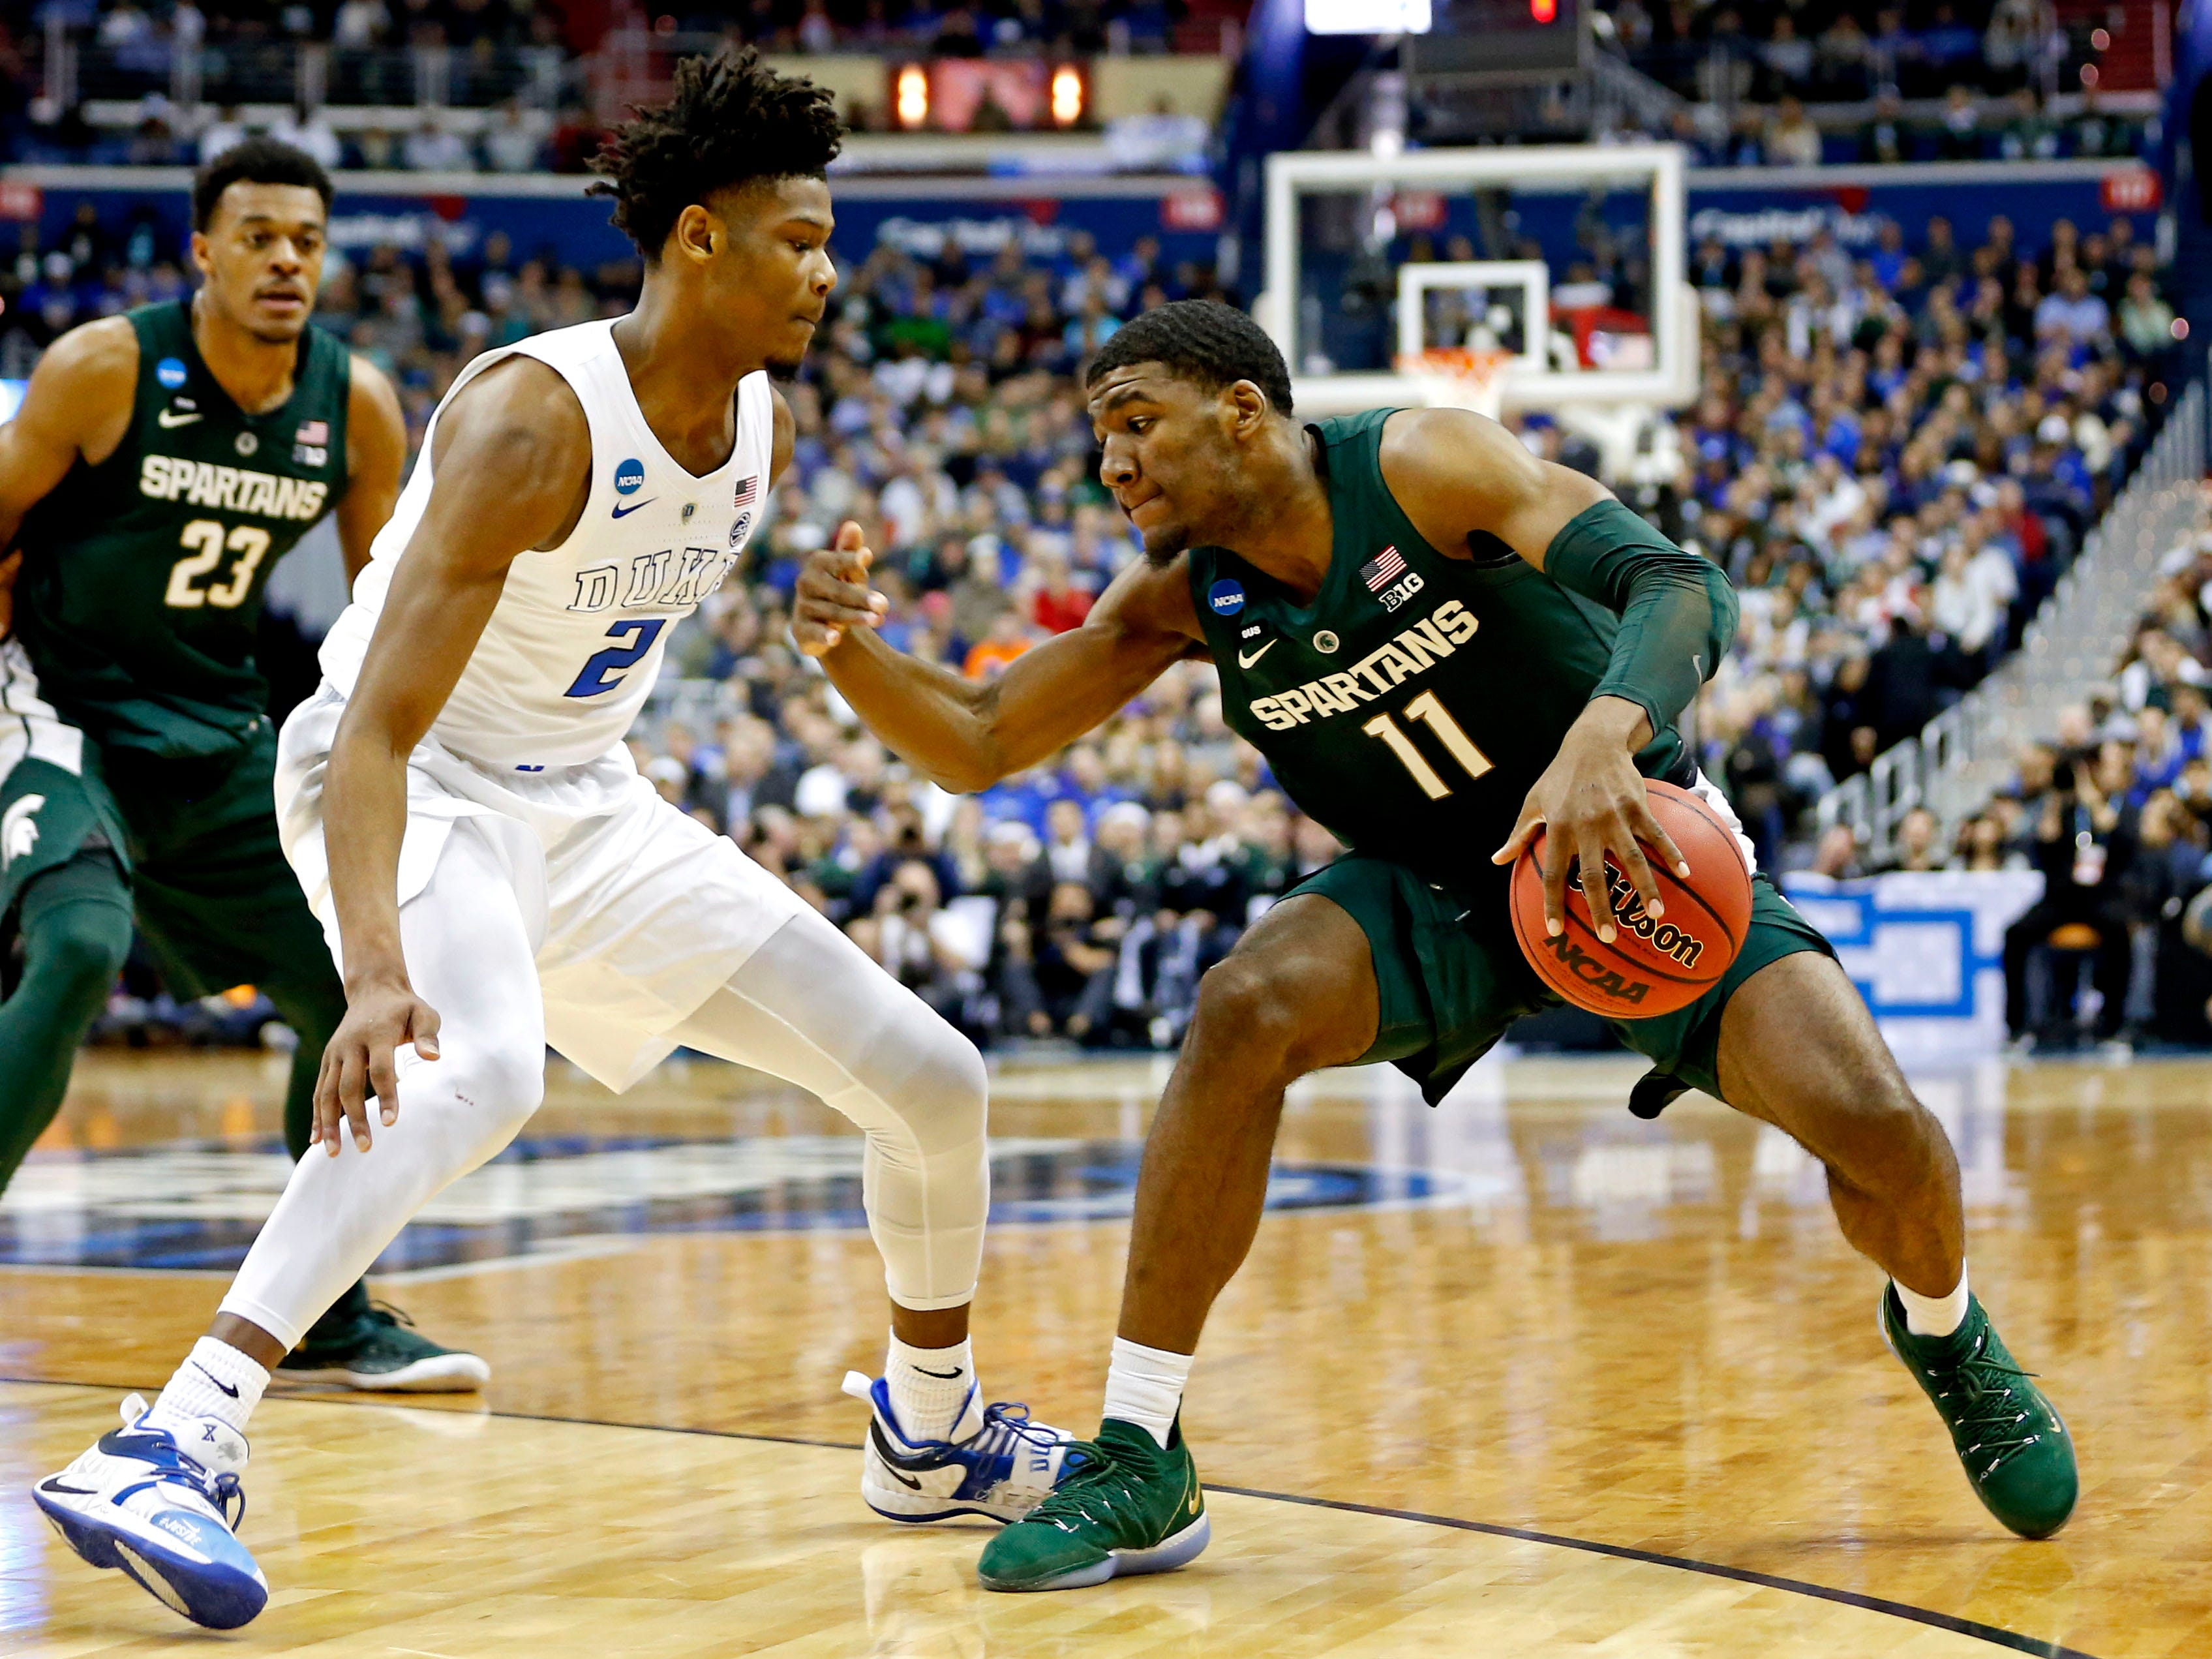 Mar 31, 2019; Washington, DC, USA; Michigan State Spartans forward Aaron Henry (11) handles the ball against Duke Blue Devils forward Cam Reddish (2) during the first half in the championship game of the east regional of the 2019 NCAA Tournament at Capital One Arena. Mandatory Credit: Amber Searls-USA TODAY Sports